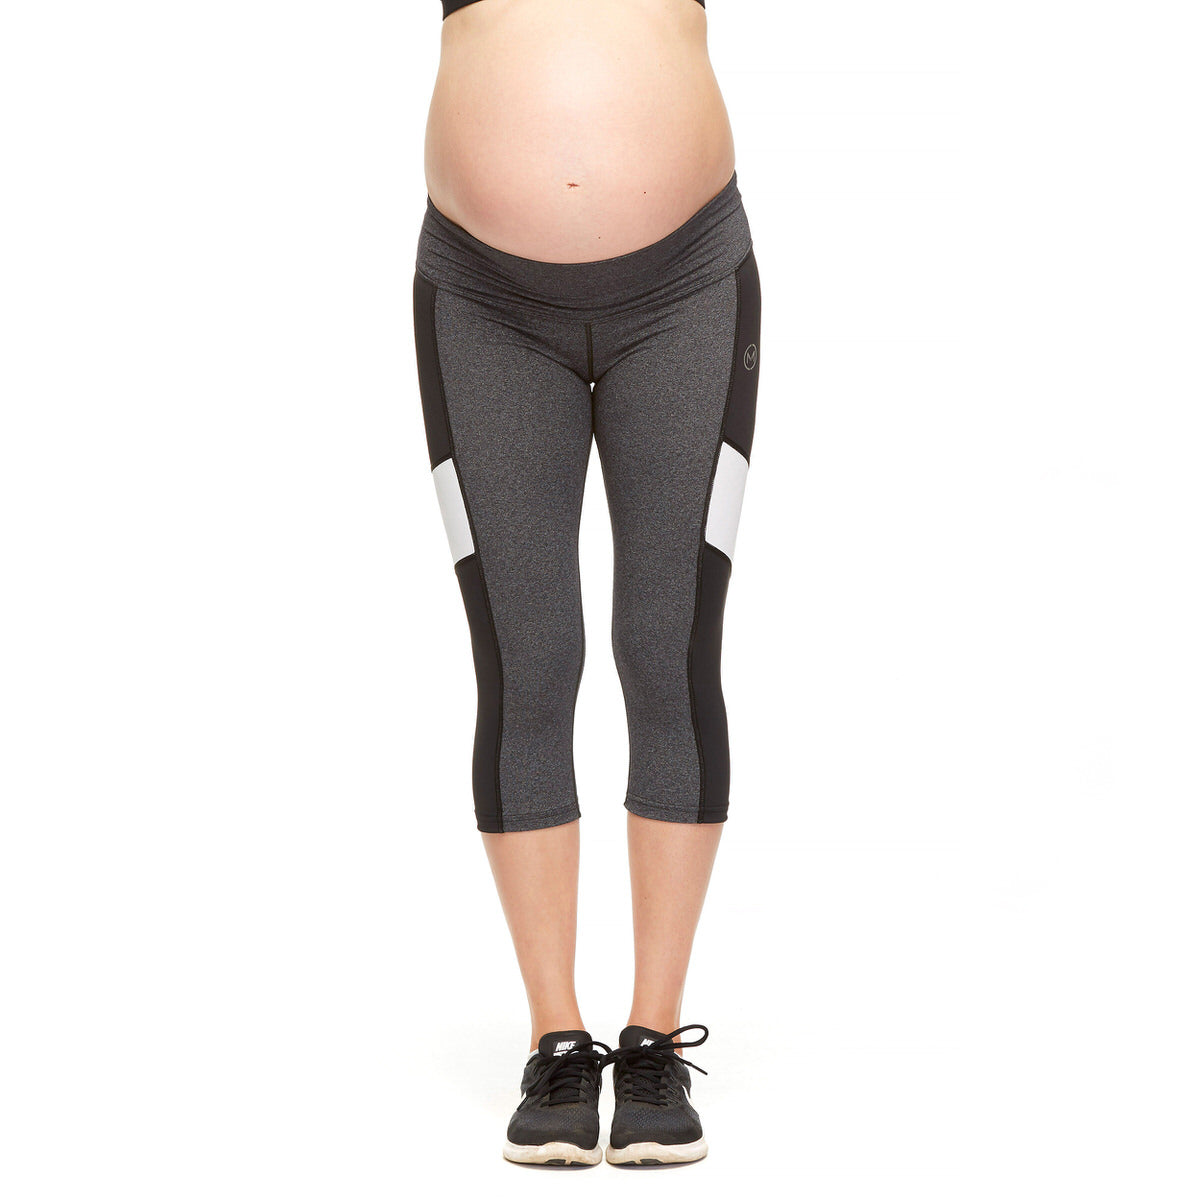 ESPRIT LEGGING - Active ¾ with Mid Waist